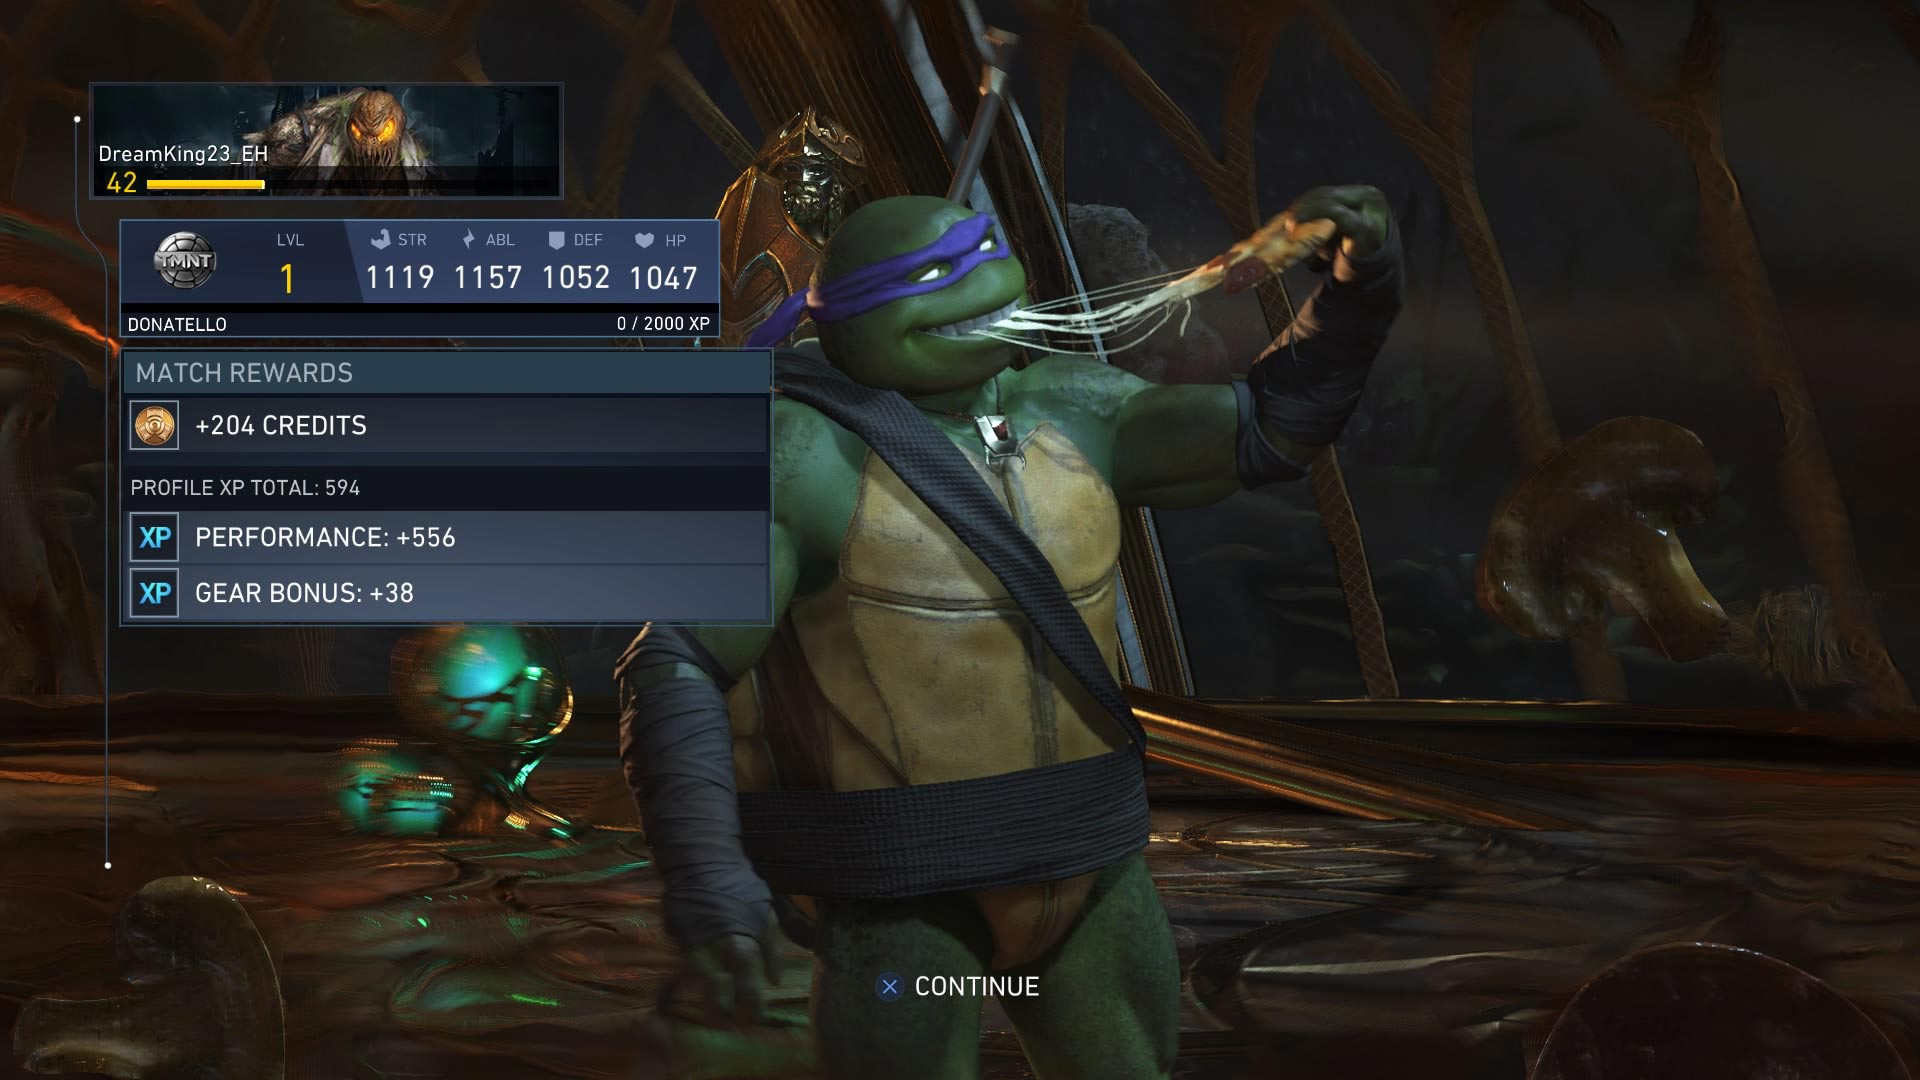 Teenage Mutant Ninja Turtles now available in Injustice 2 6 out of 6 image gallery